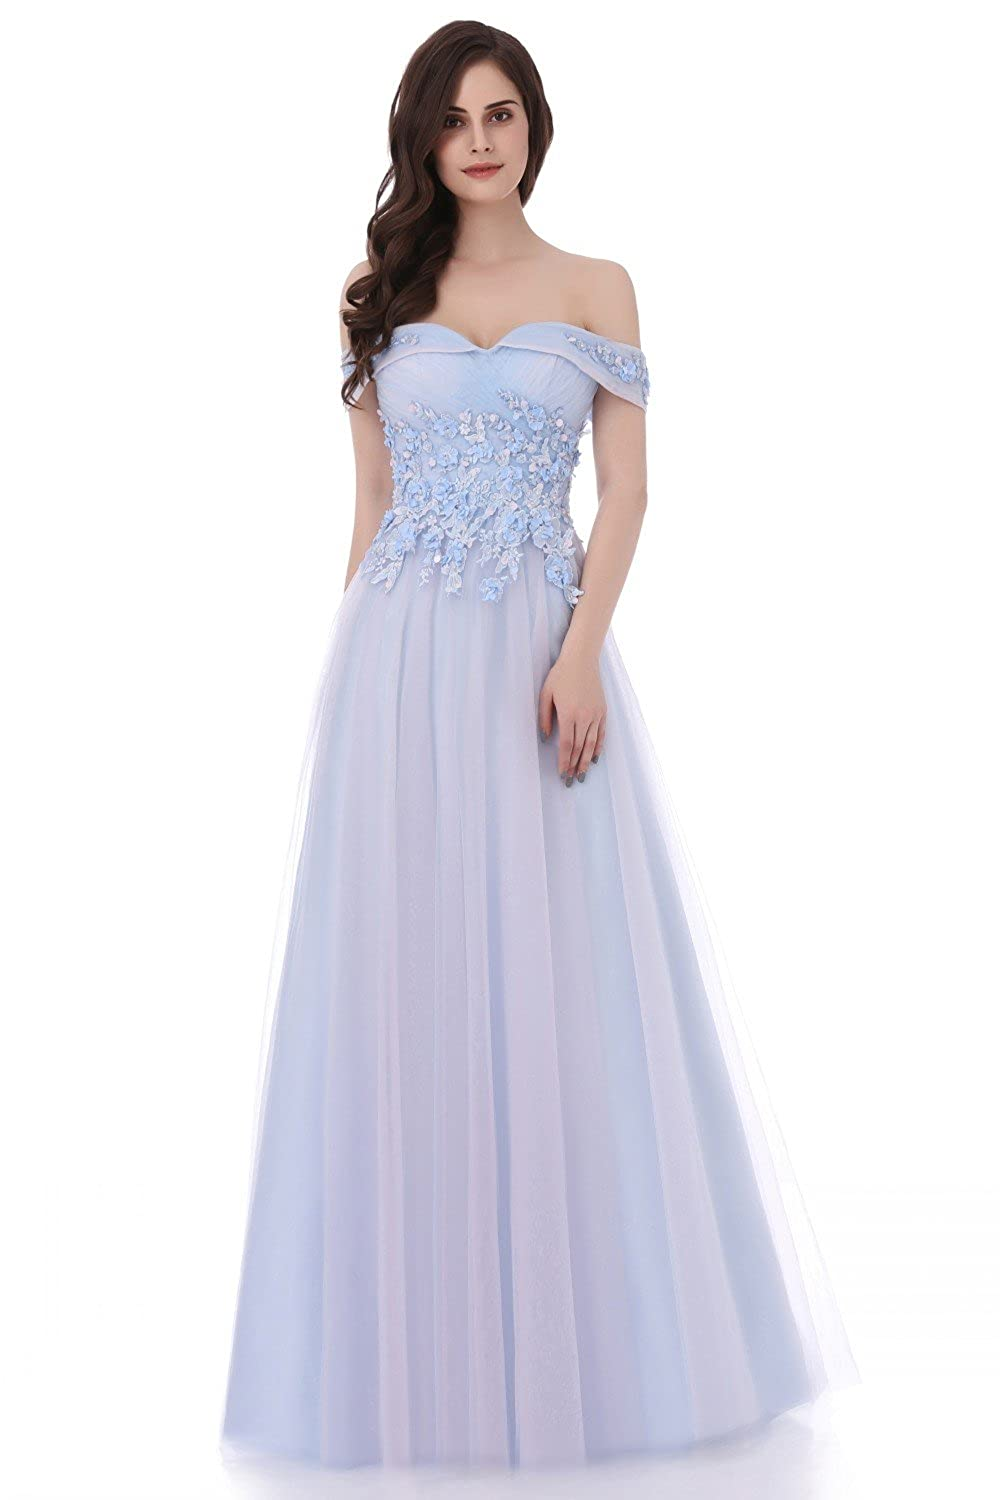 Annie's Bridal Long Floral Wedding Party Evening Prom Dress for Bride Plus Size 2017